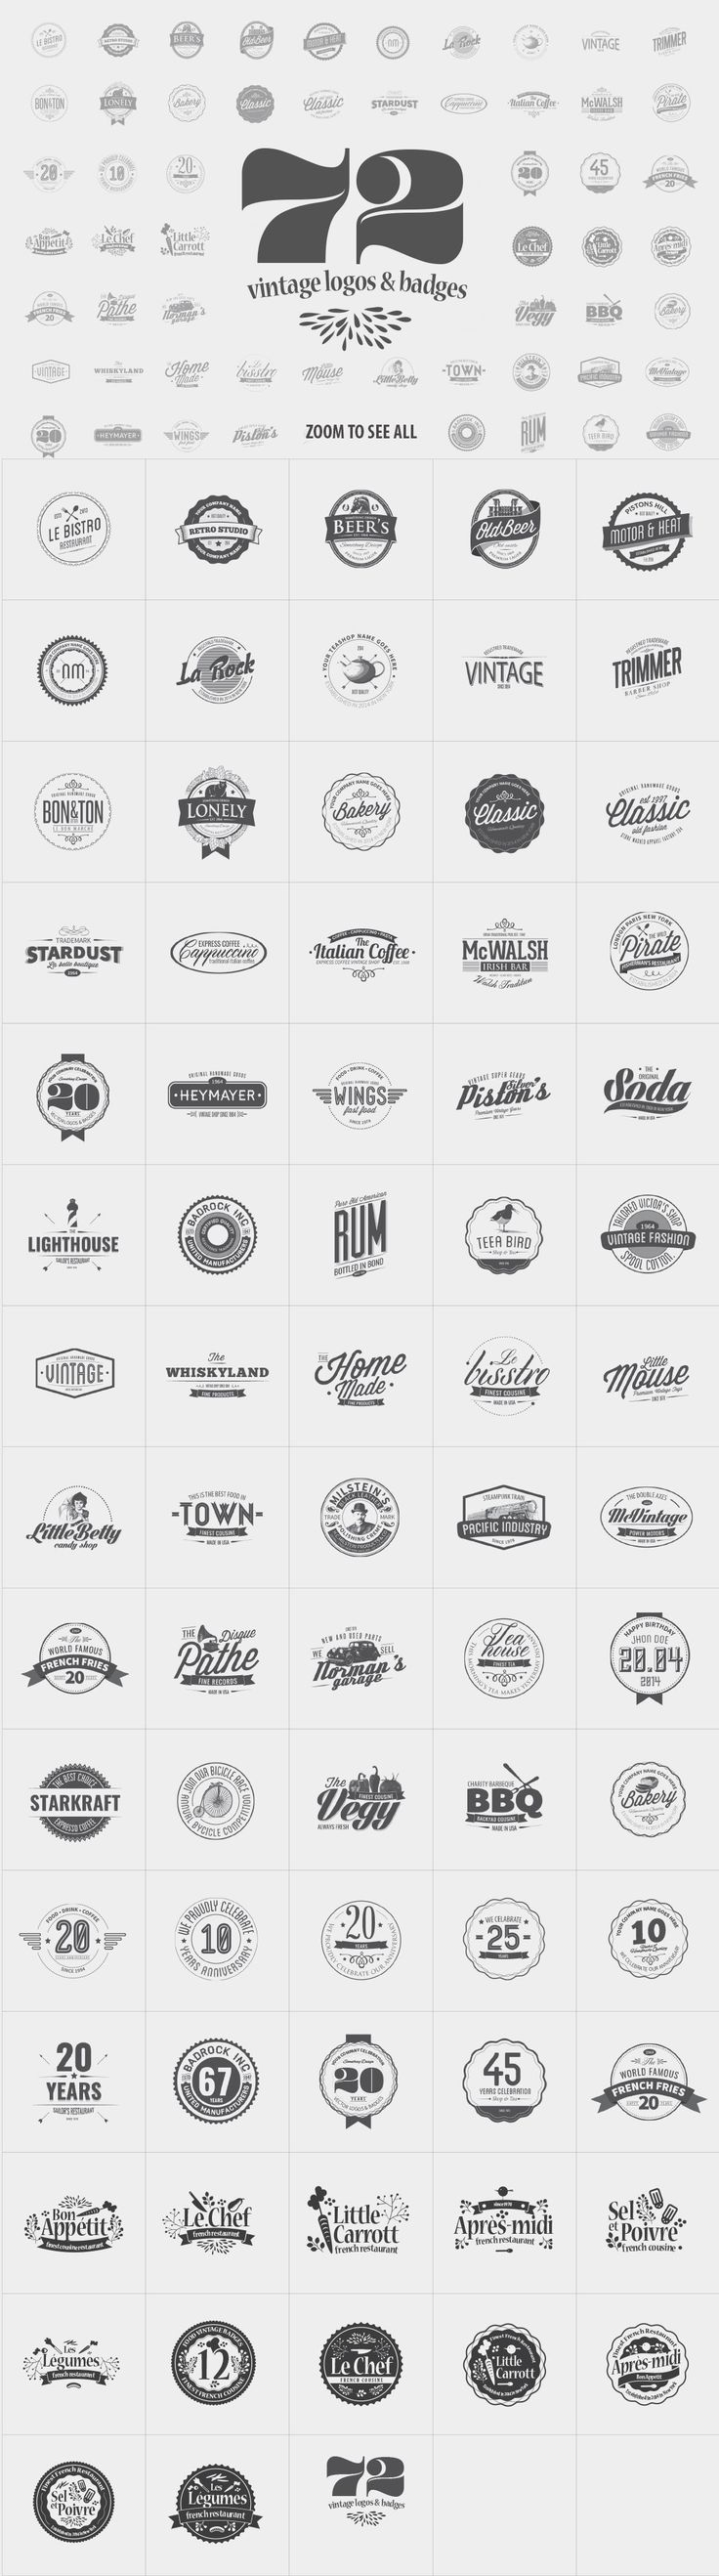 72 Vintage Logos & Badges by The Logo Shop on @creativemarket